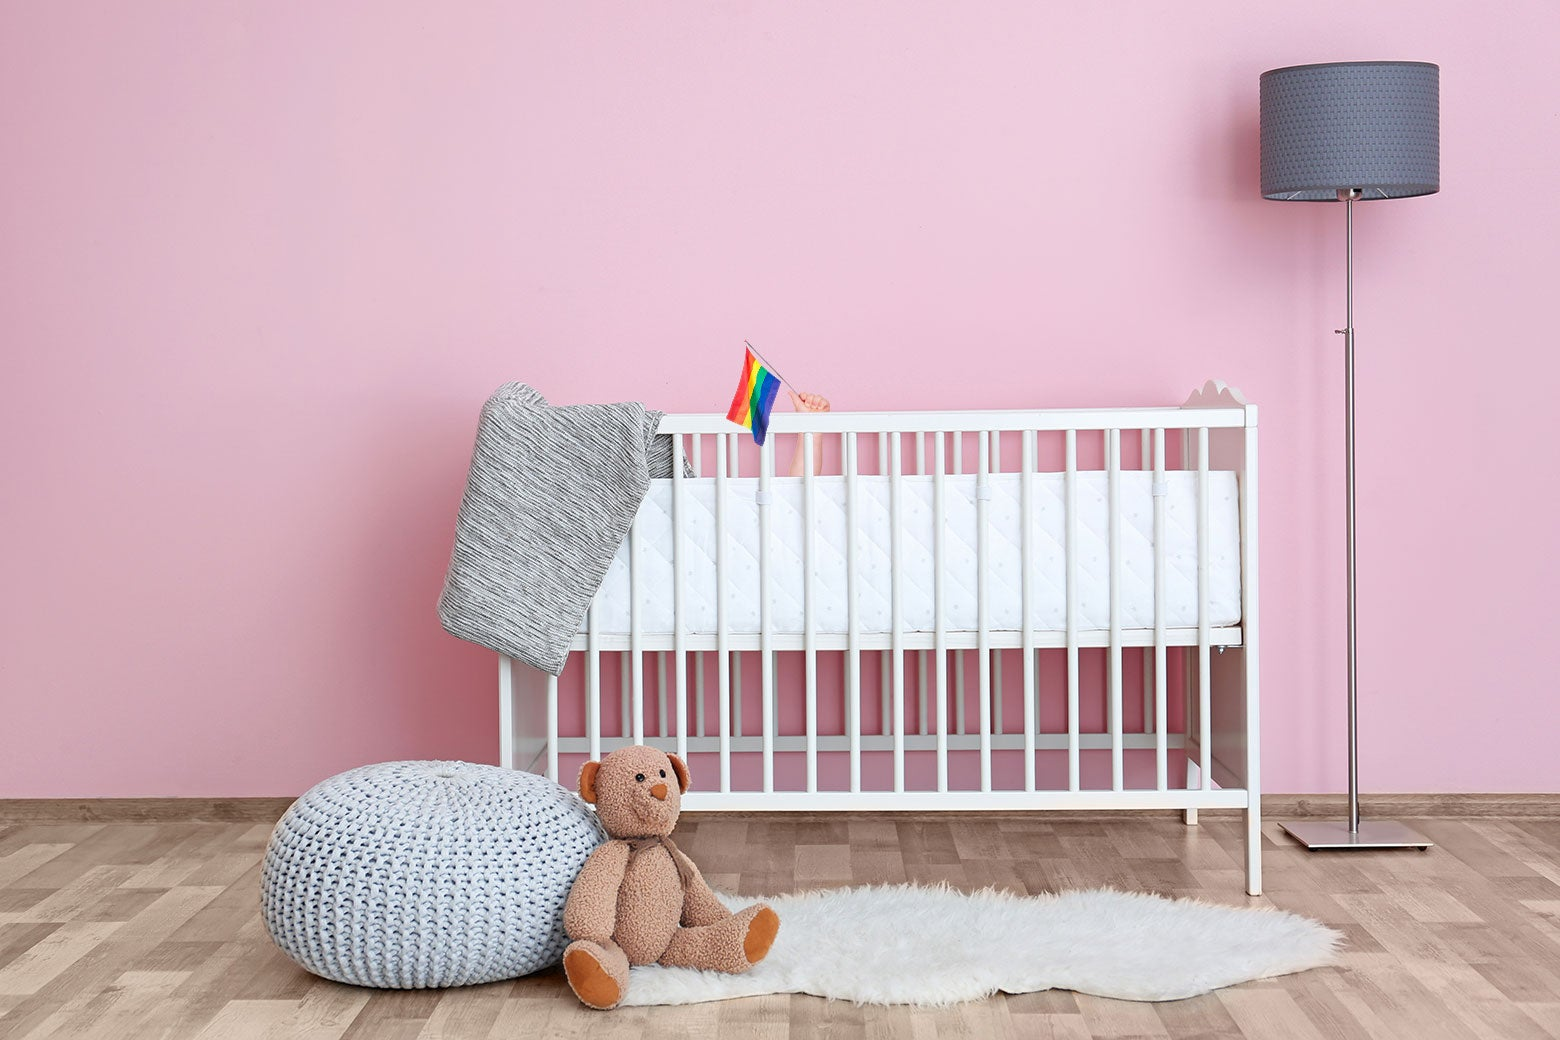 Photo illustration of a baby crib with a little pride flag poking out of it.